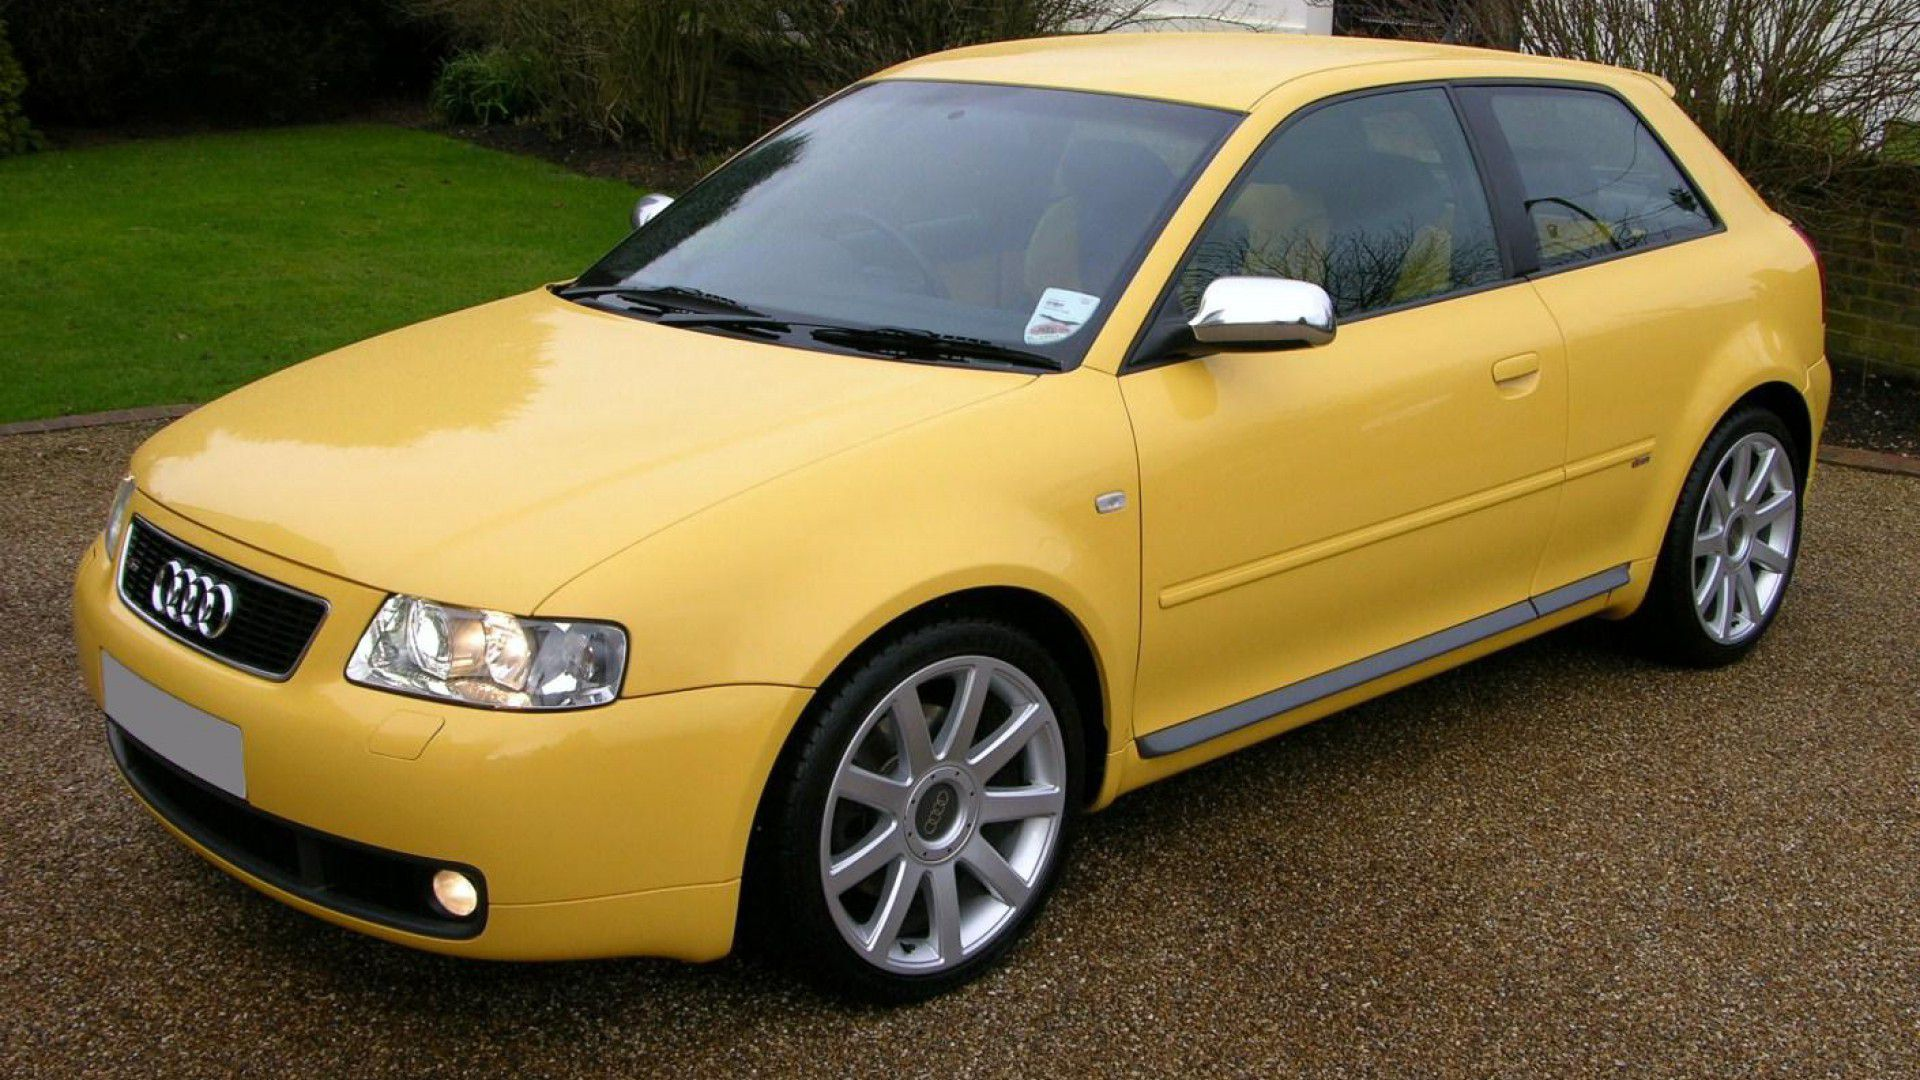 Audi A3 (1996 to 2003)